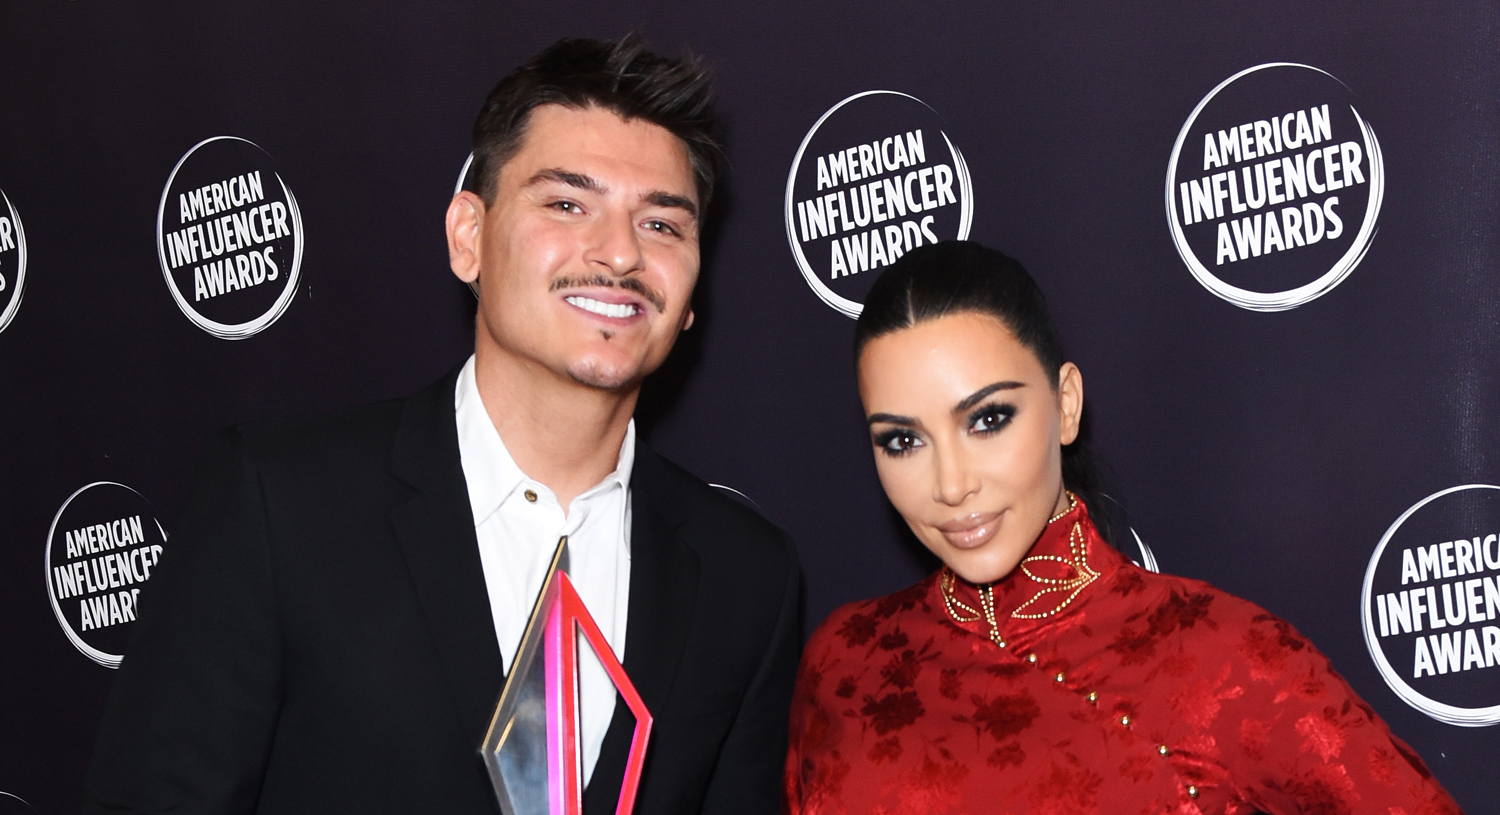 Kim Kardashian Honors Longtime Makeup Artist Mario Dedivanovic at American Influencer Awards 2019